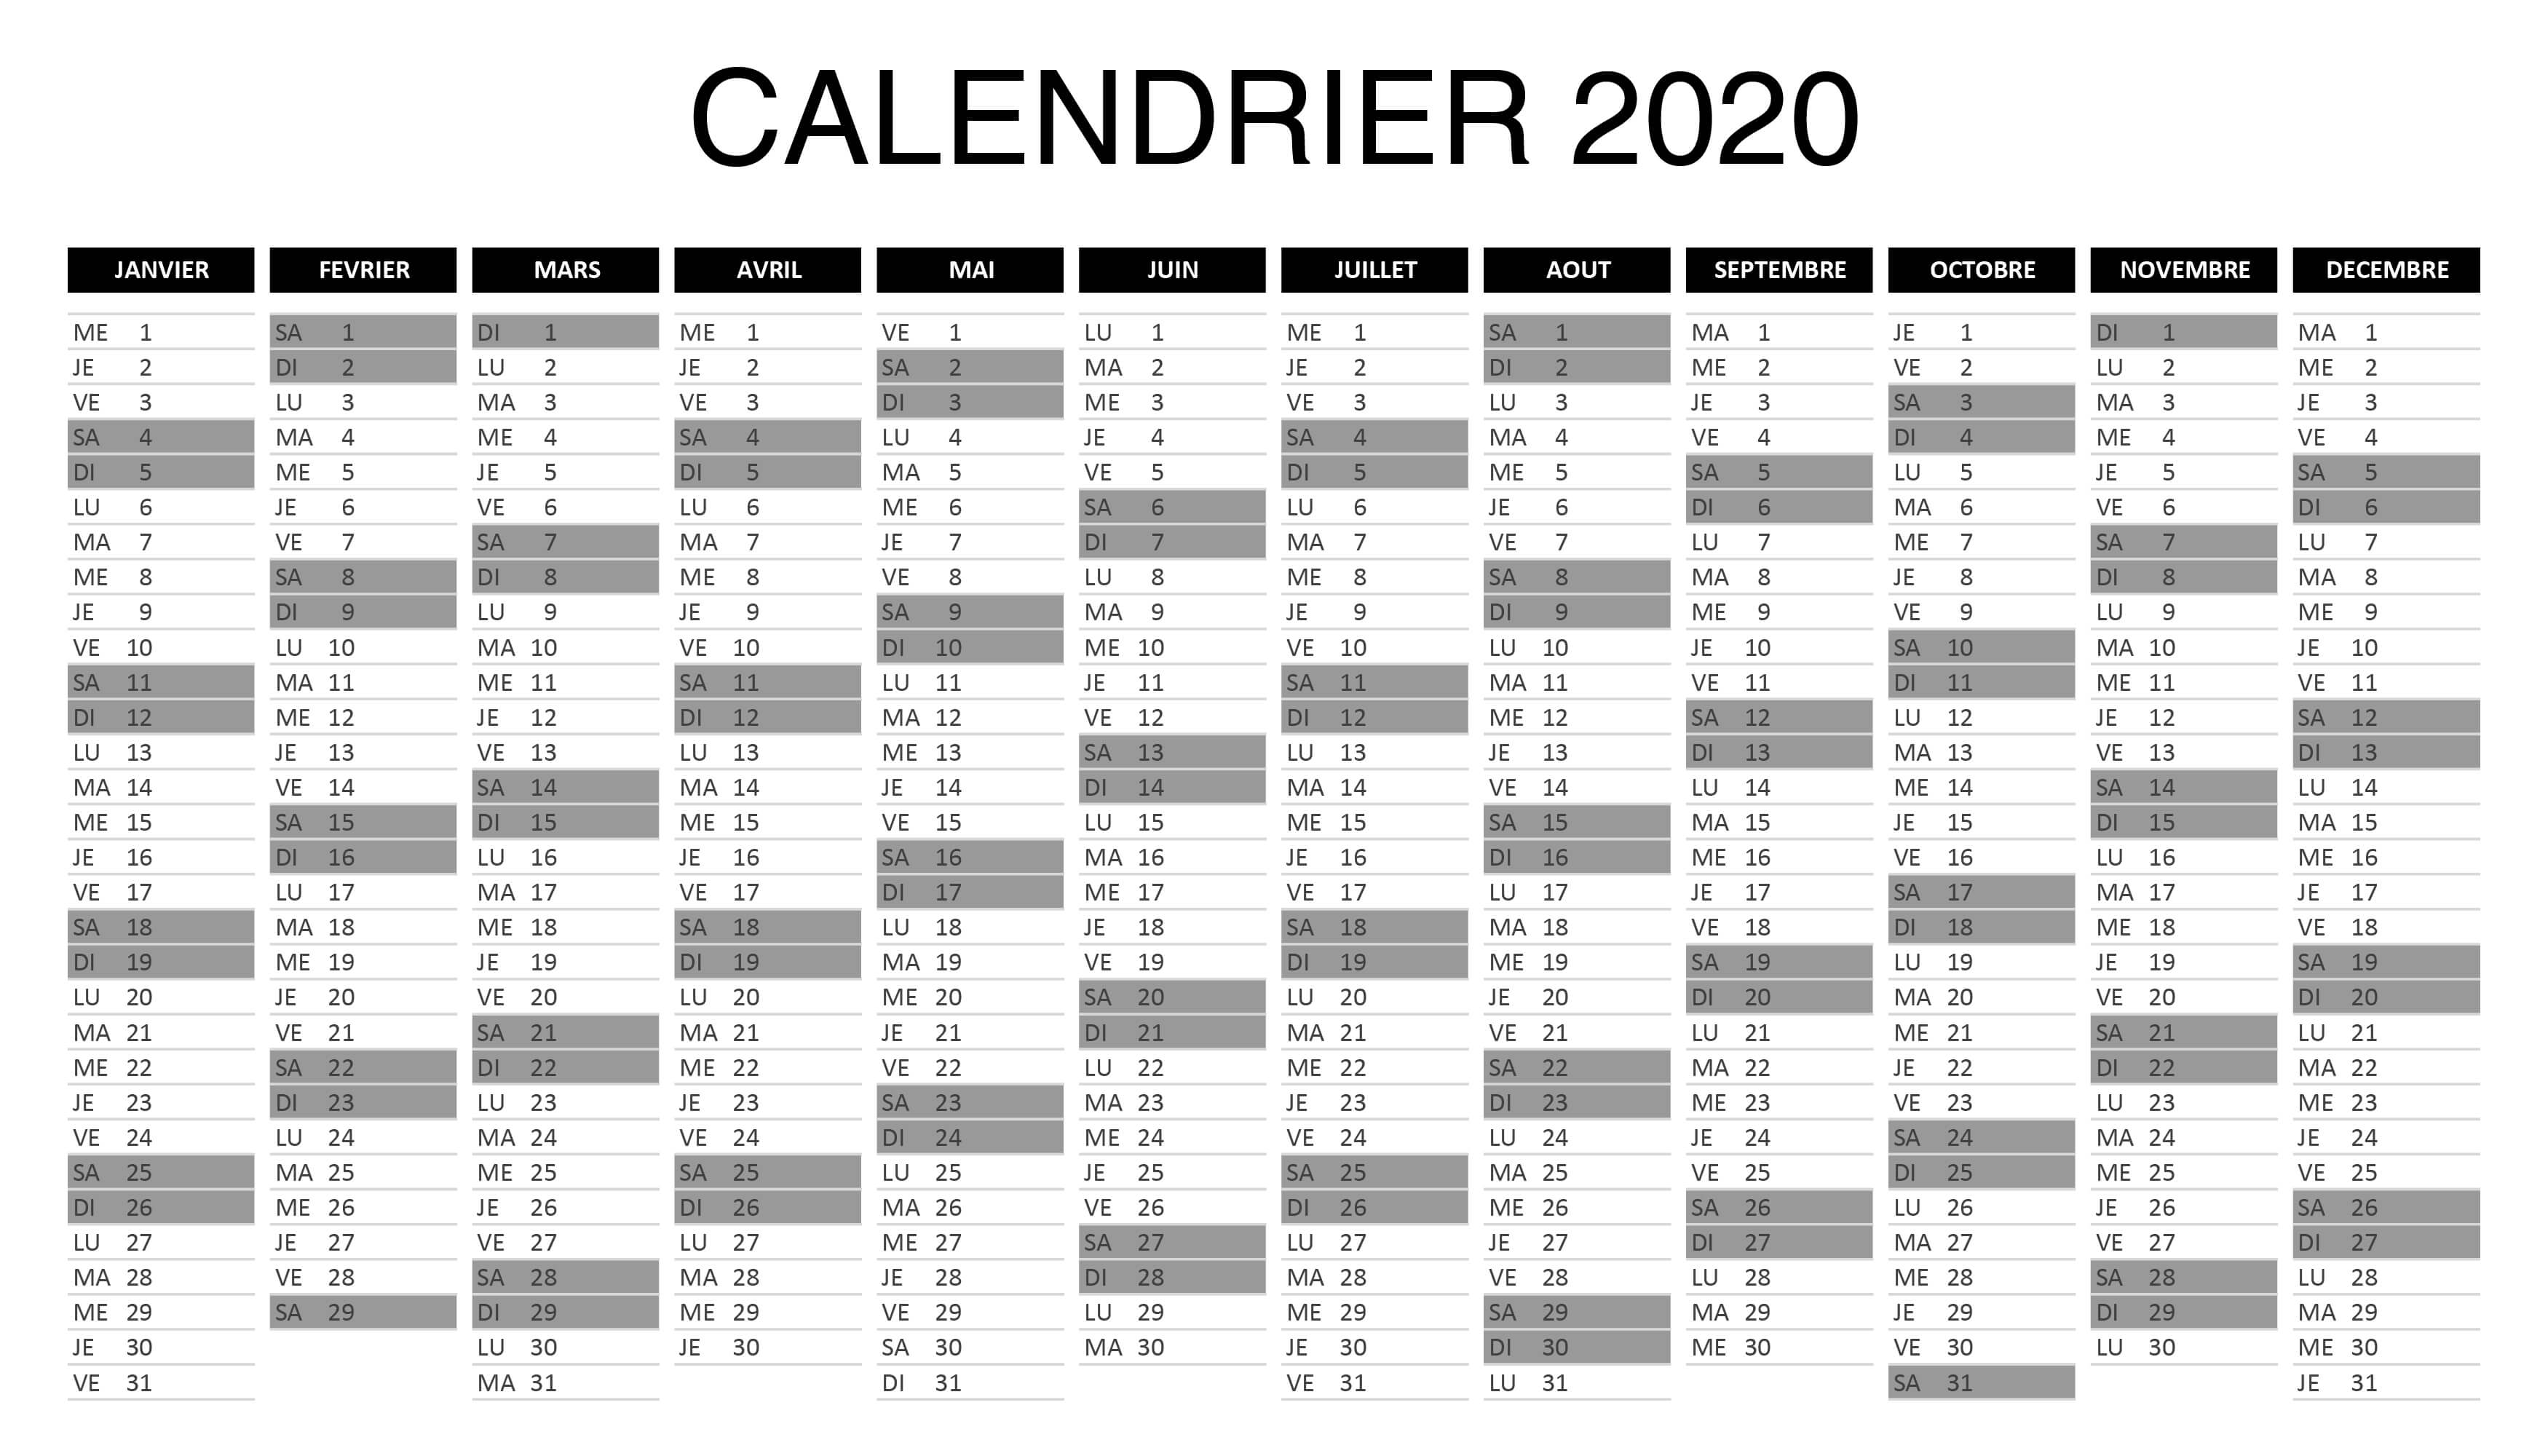 Calendrier 2020 Excel